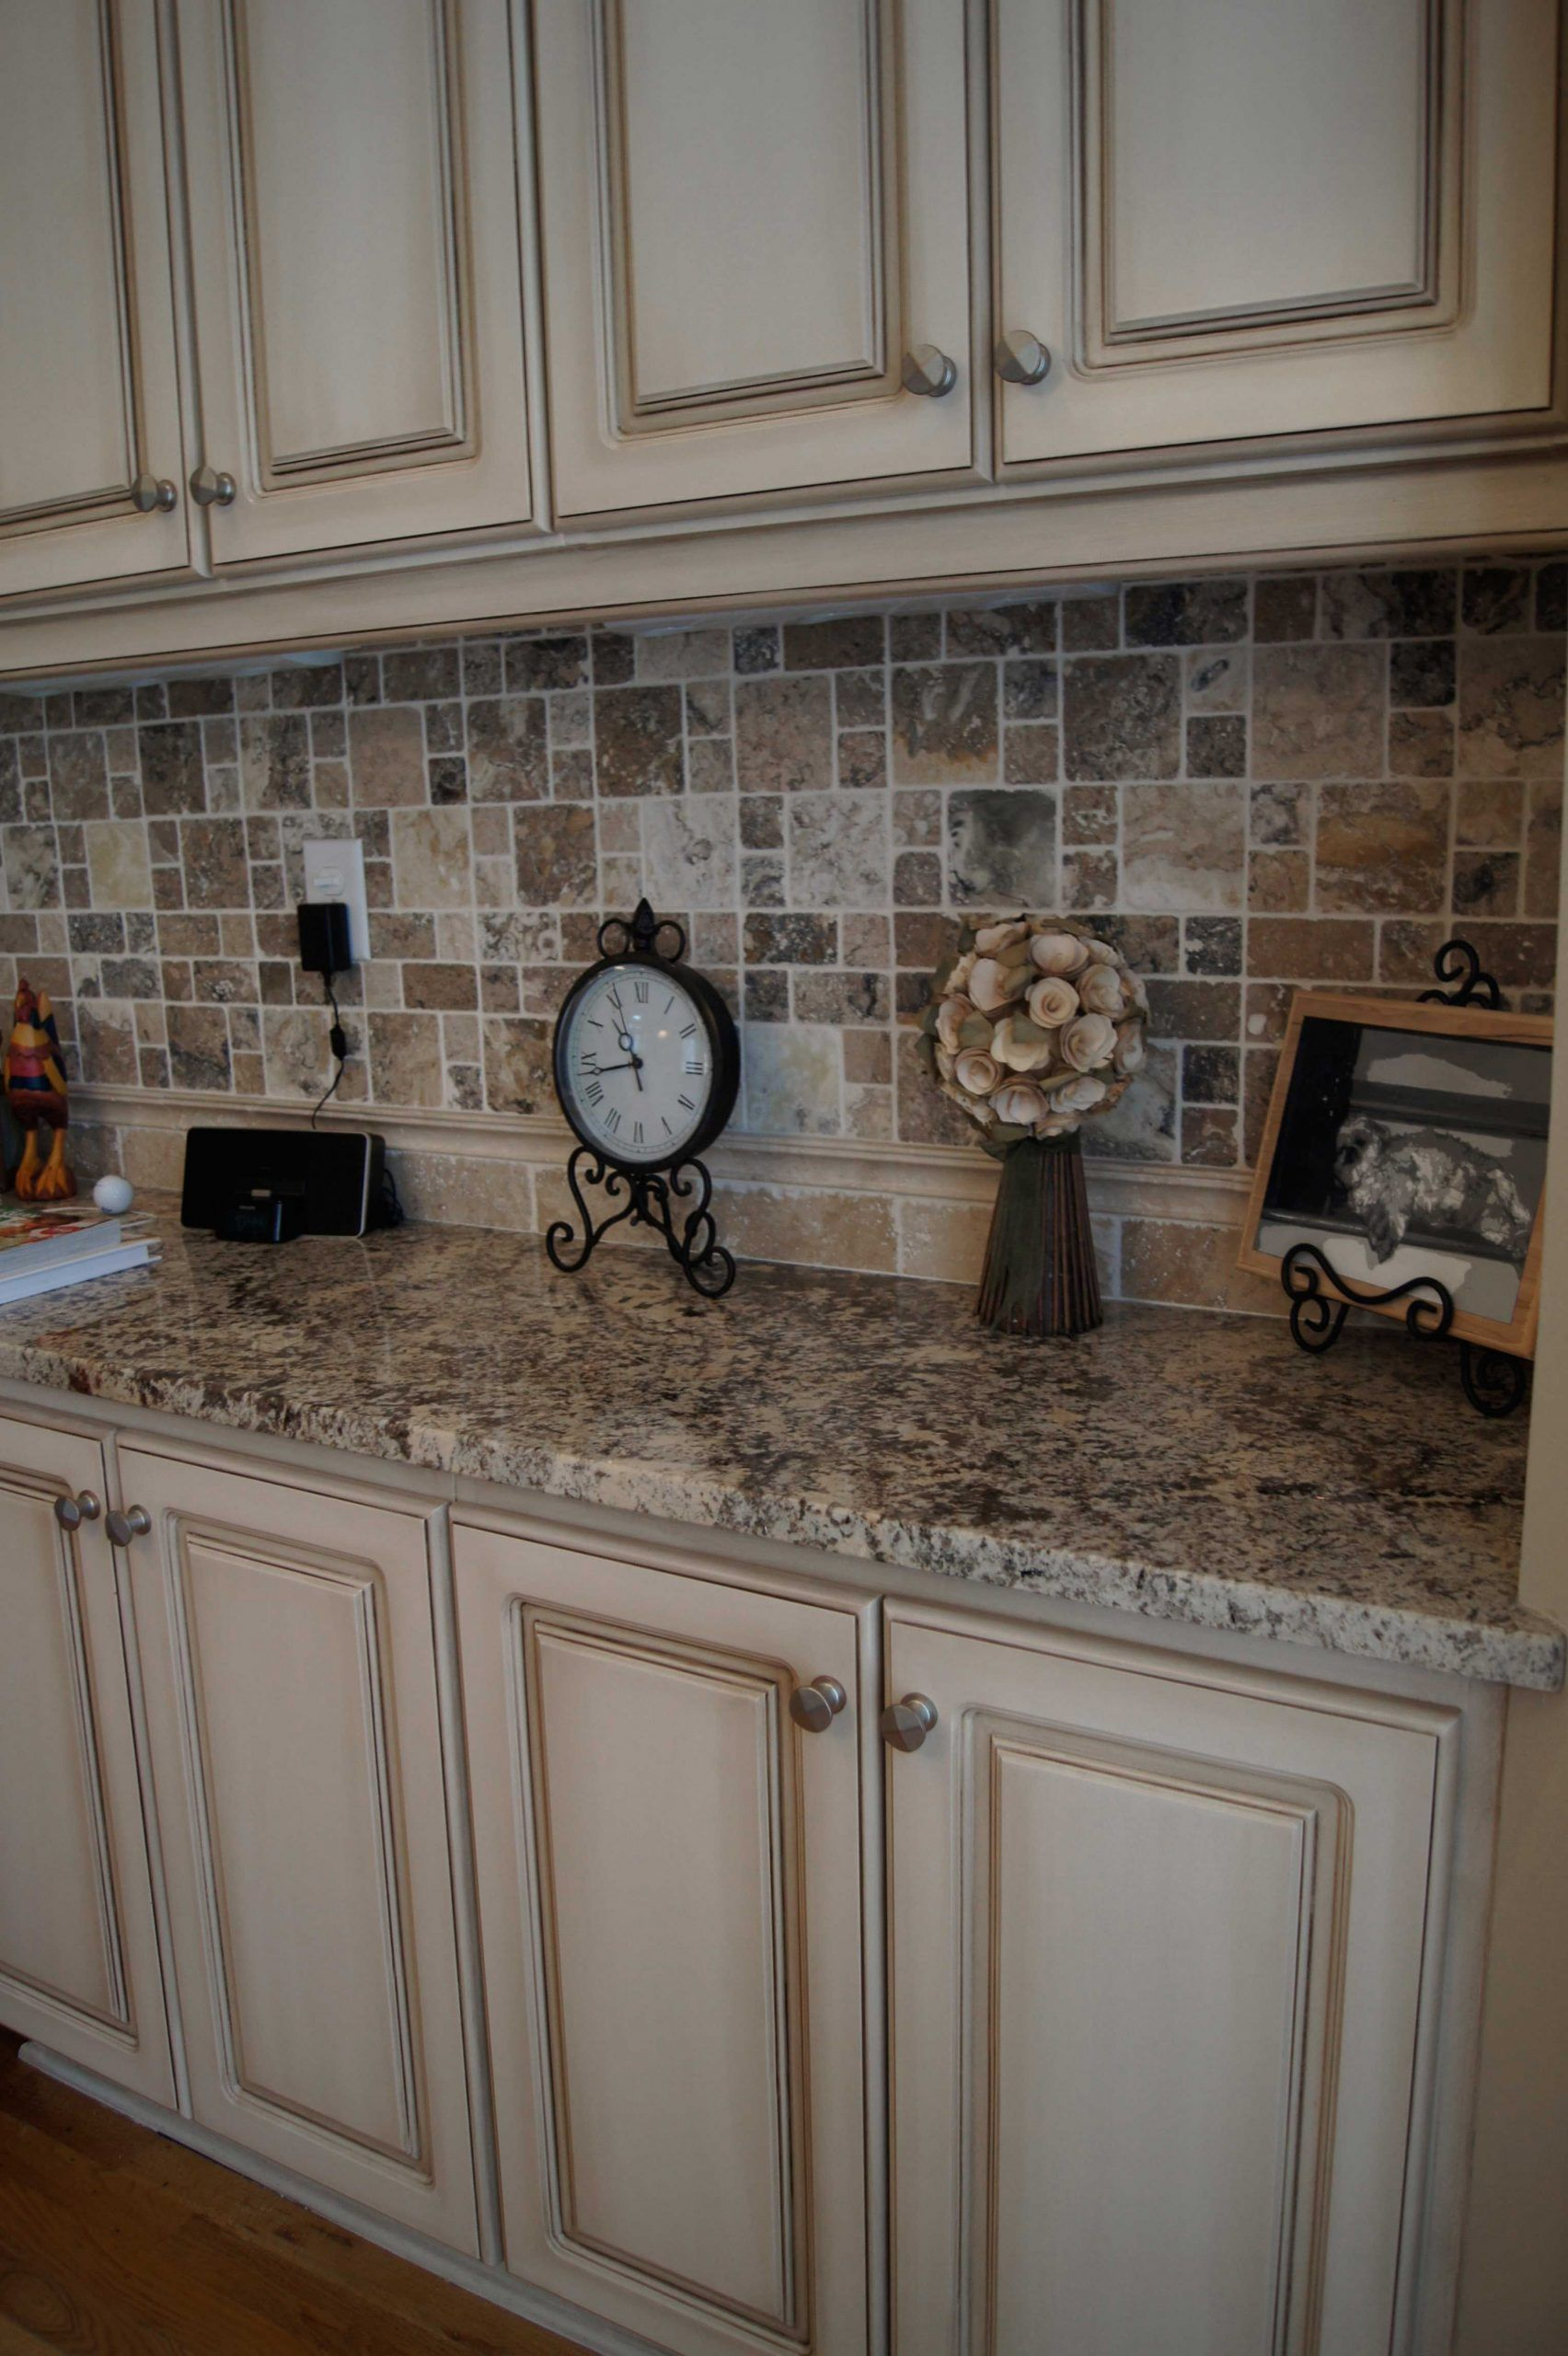 Off White Distressed Kitchen Cabinets In 2020 Distressed Kitchen Distressed Kitchen Cabinets Espresso Kitchen Cabinets